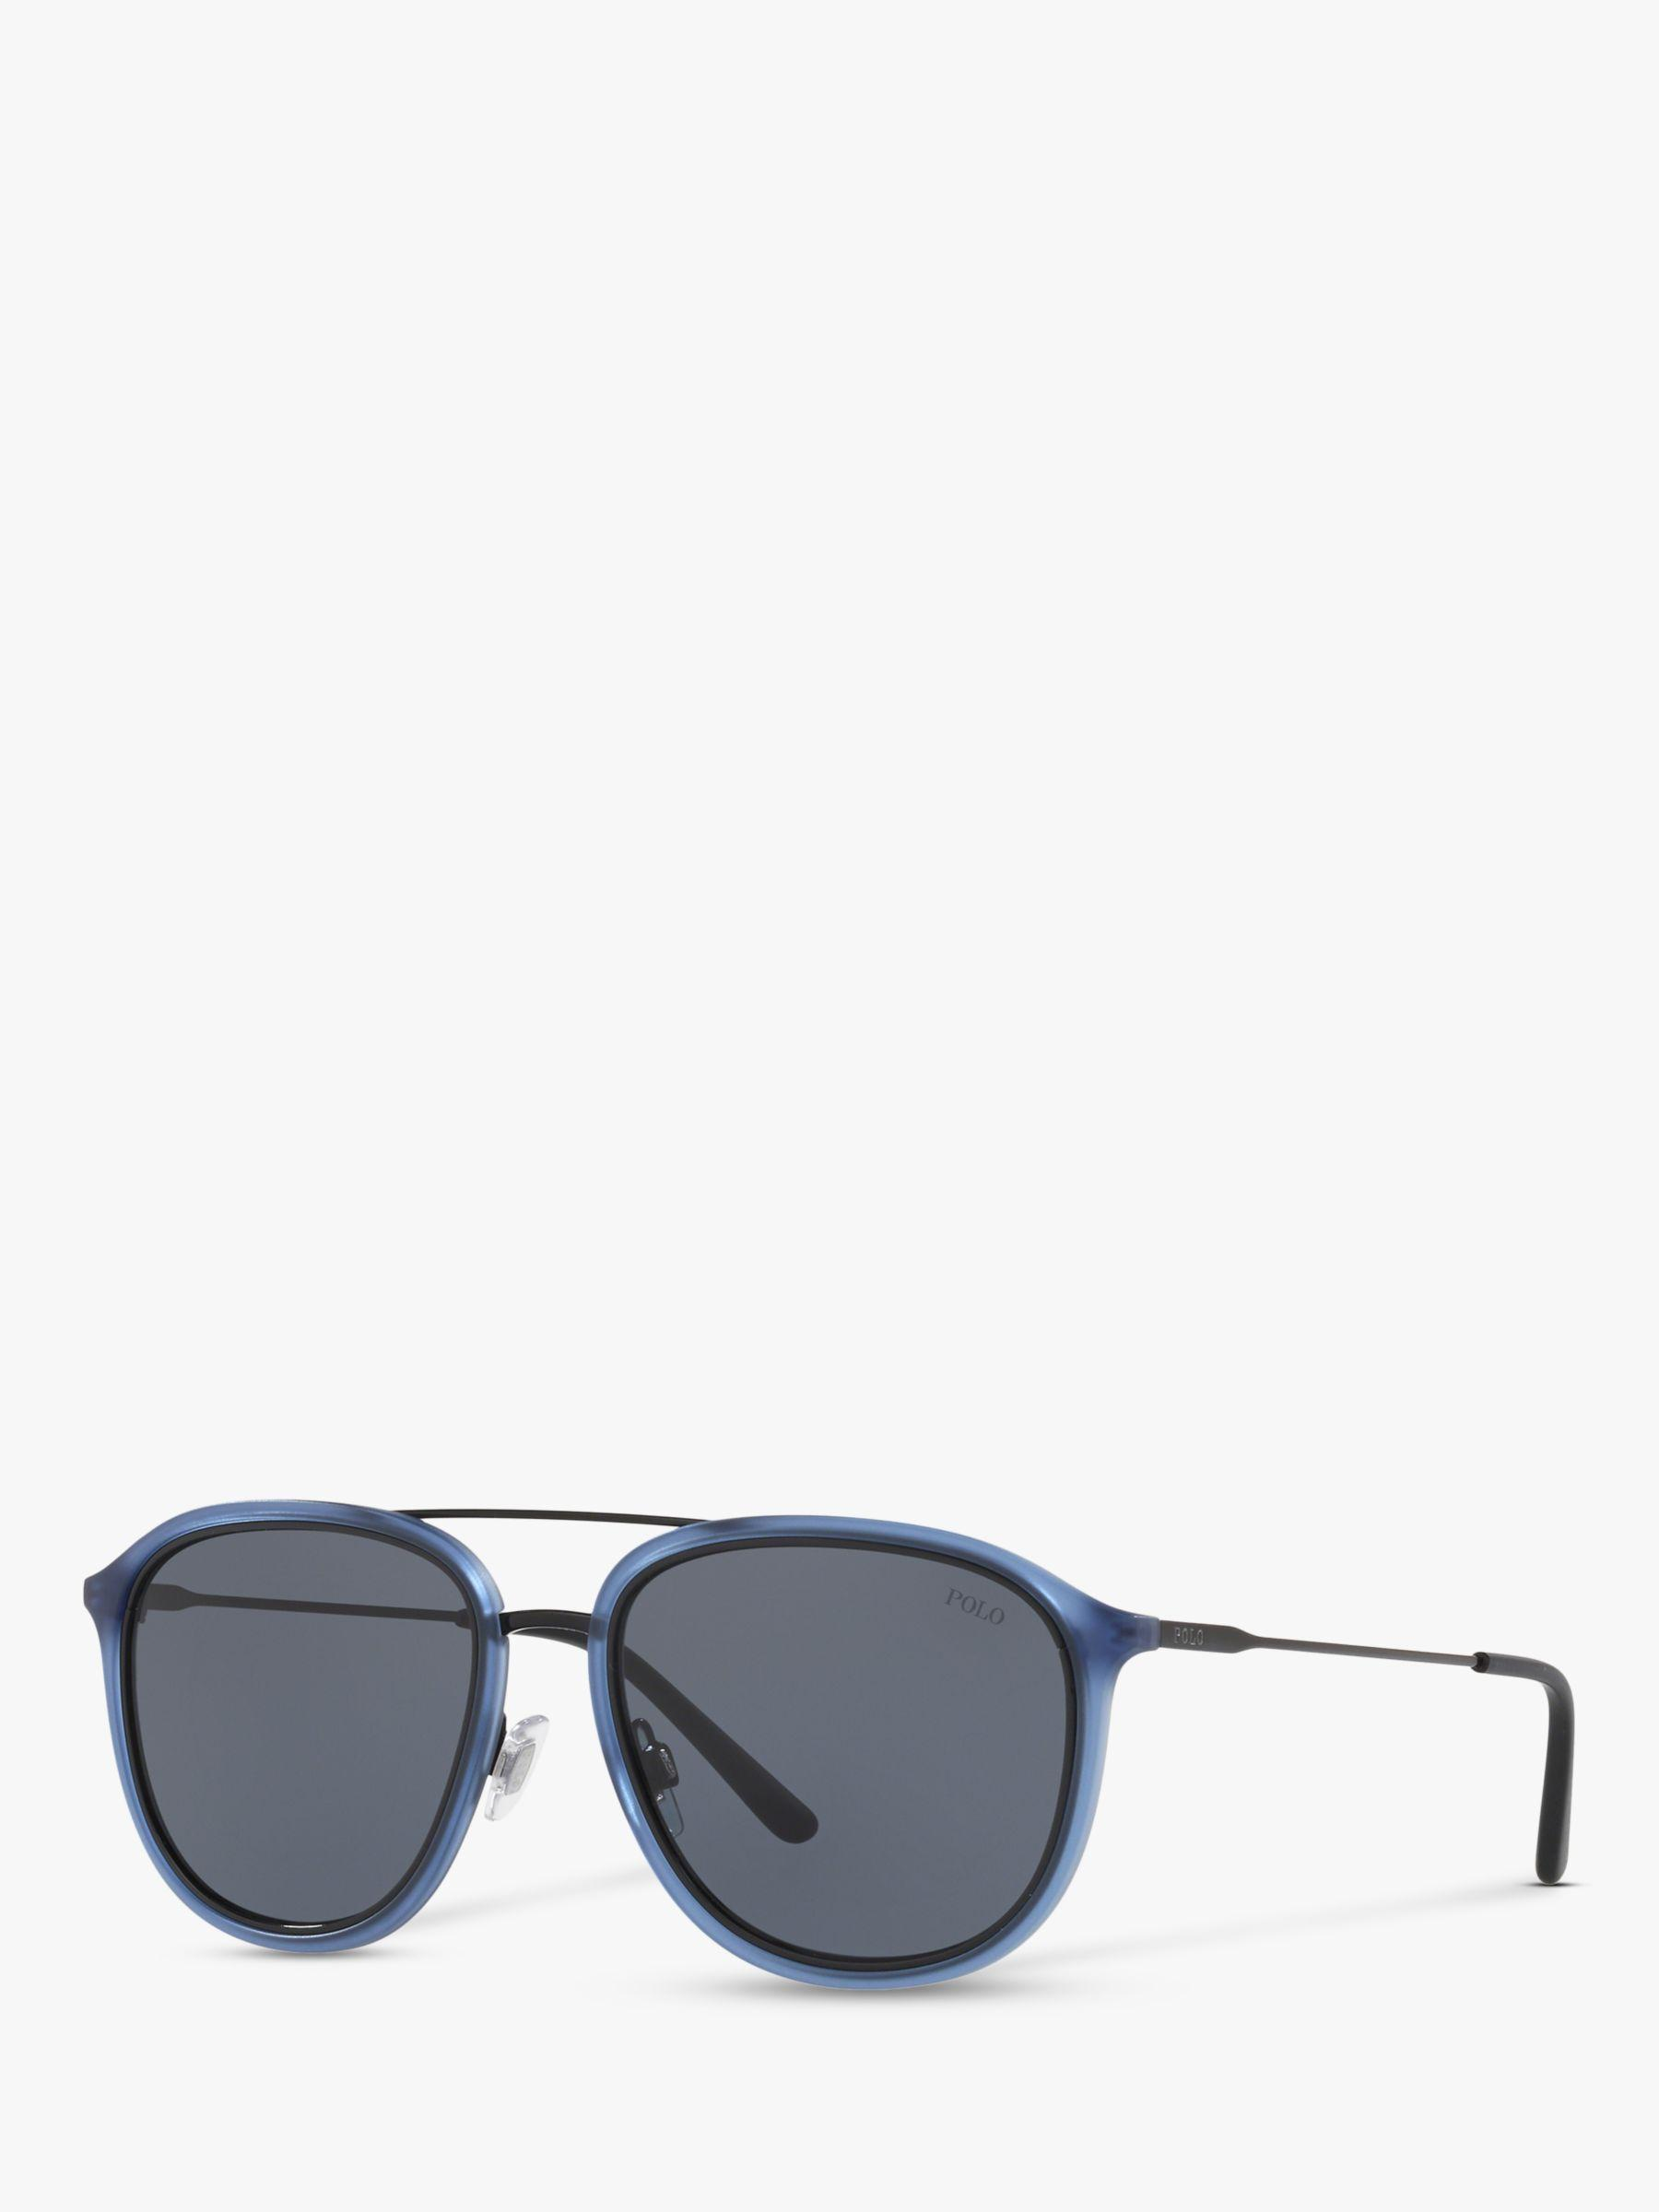 c7bc6b606ff4 Ralph Lauren Polo Ph4146 Men's Pilot Sunglasses in Blue for Men - Lyst